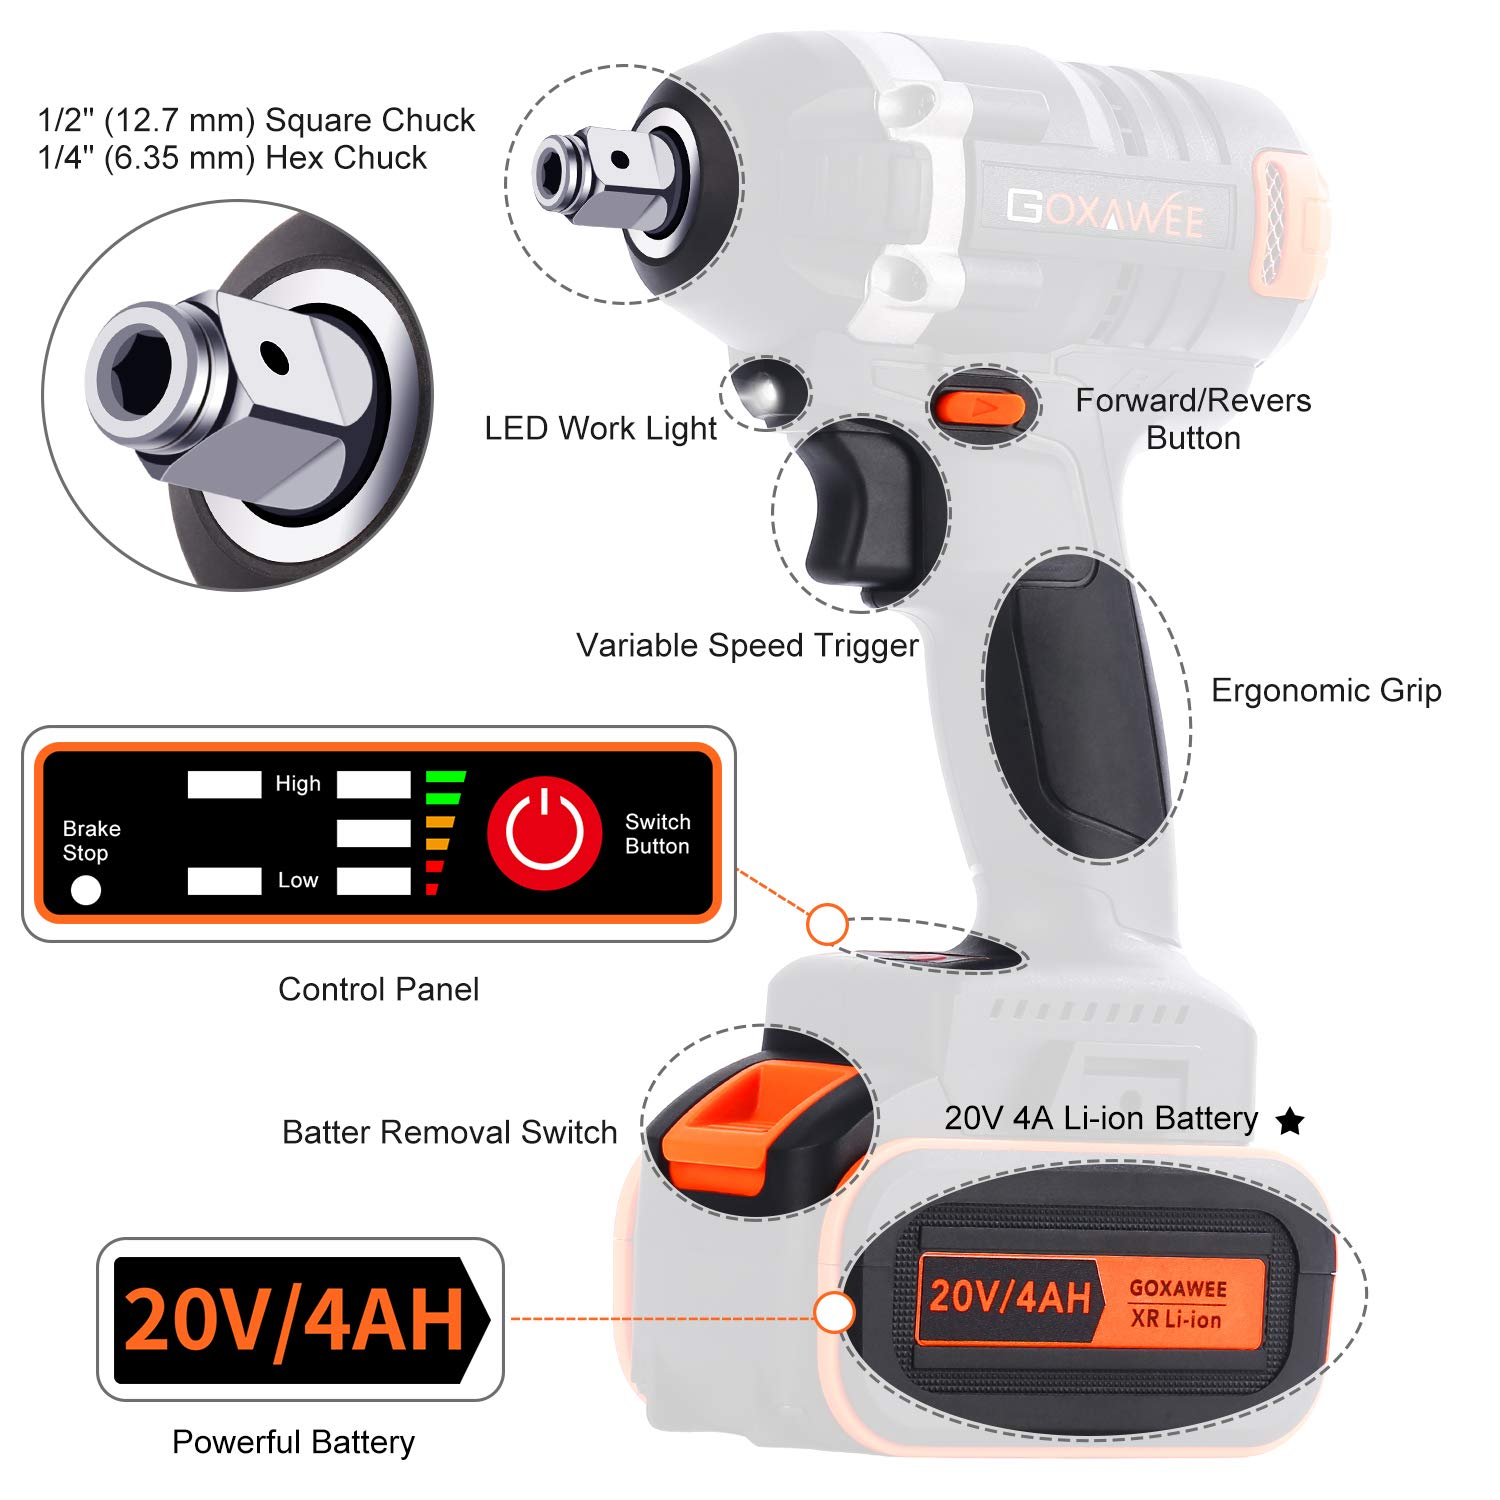 Cordless Impact Wrench 1 2 Inch – GOXAWEE 20V Electric Impact Driver 4Ah Battery, 300Nm, Brushless, 1 2 1 4 Inch Quick Chuck, 2-Speed, Tool Bag – High Torque Impact Kit for Home DIY Project